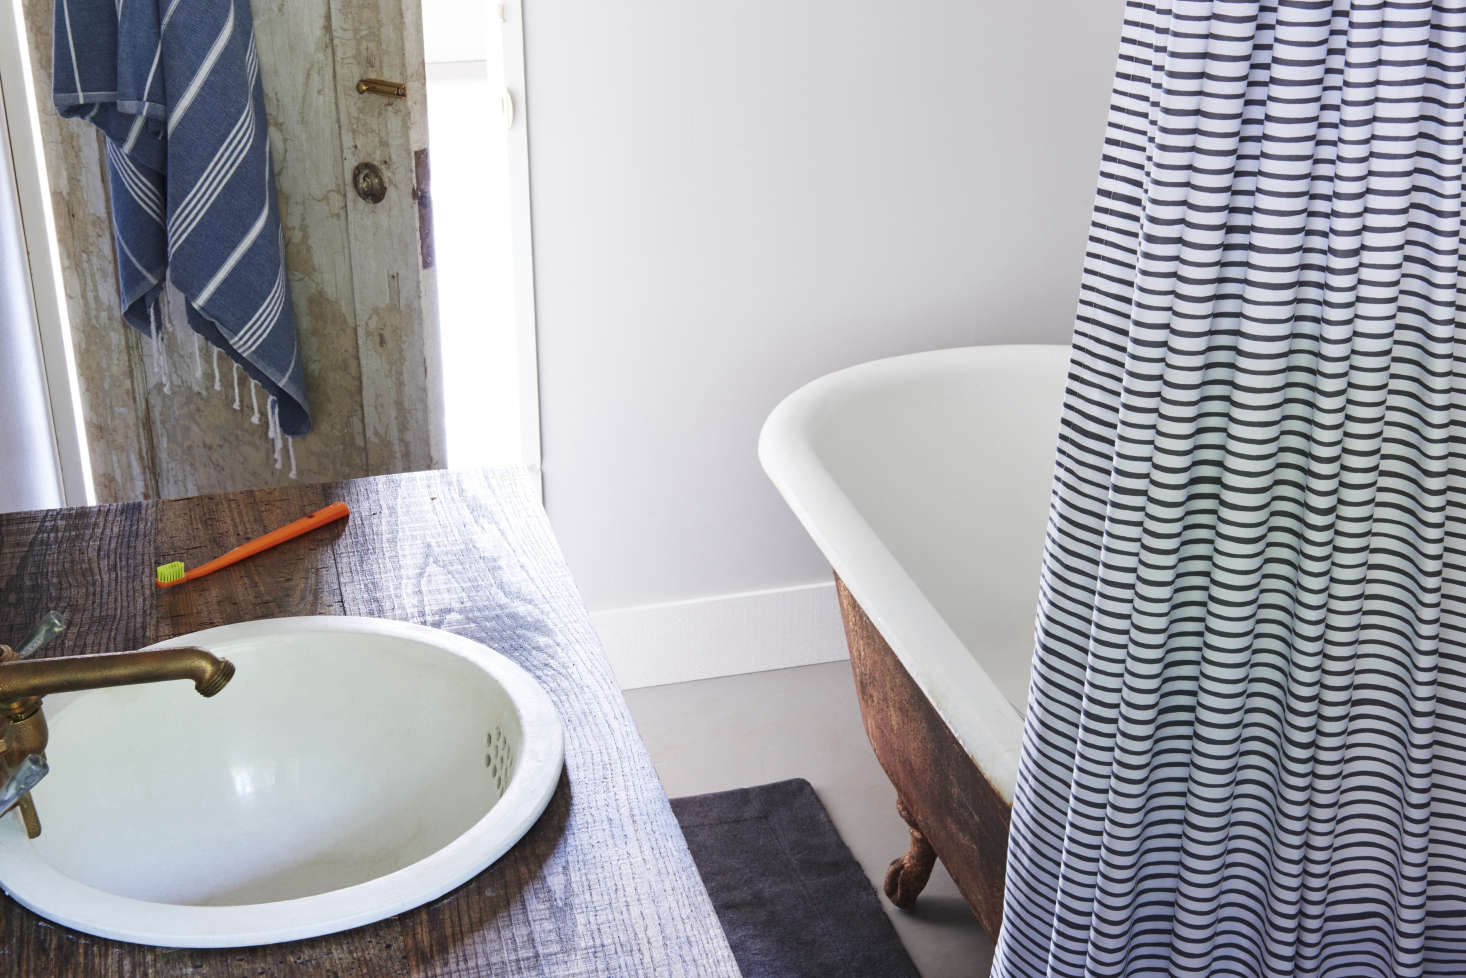 The small bath is well-appointed for country life, with an antique cast-iron tub andvintage porcelain sink.